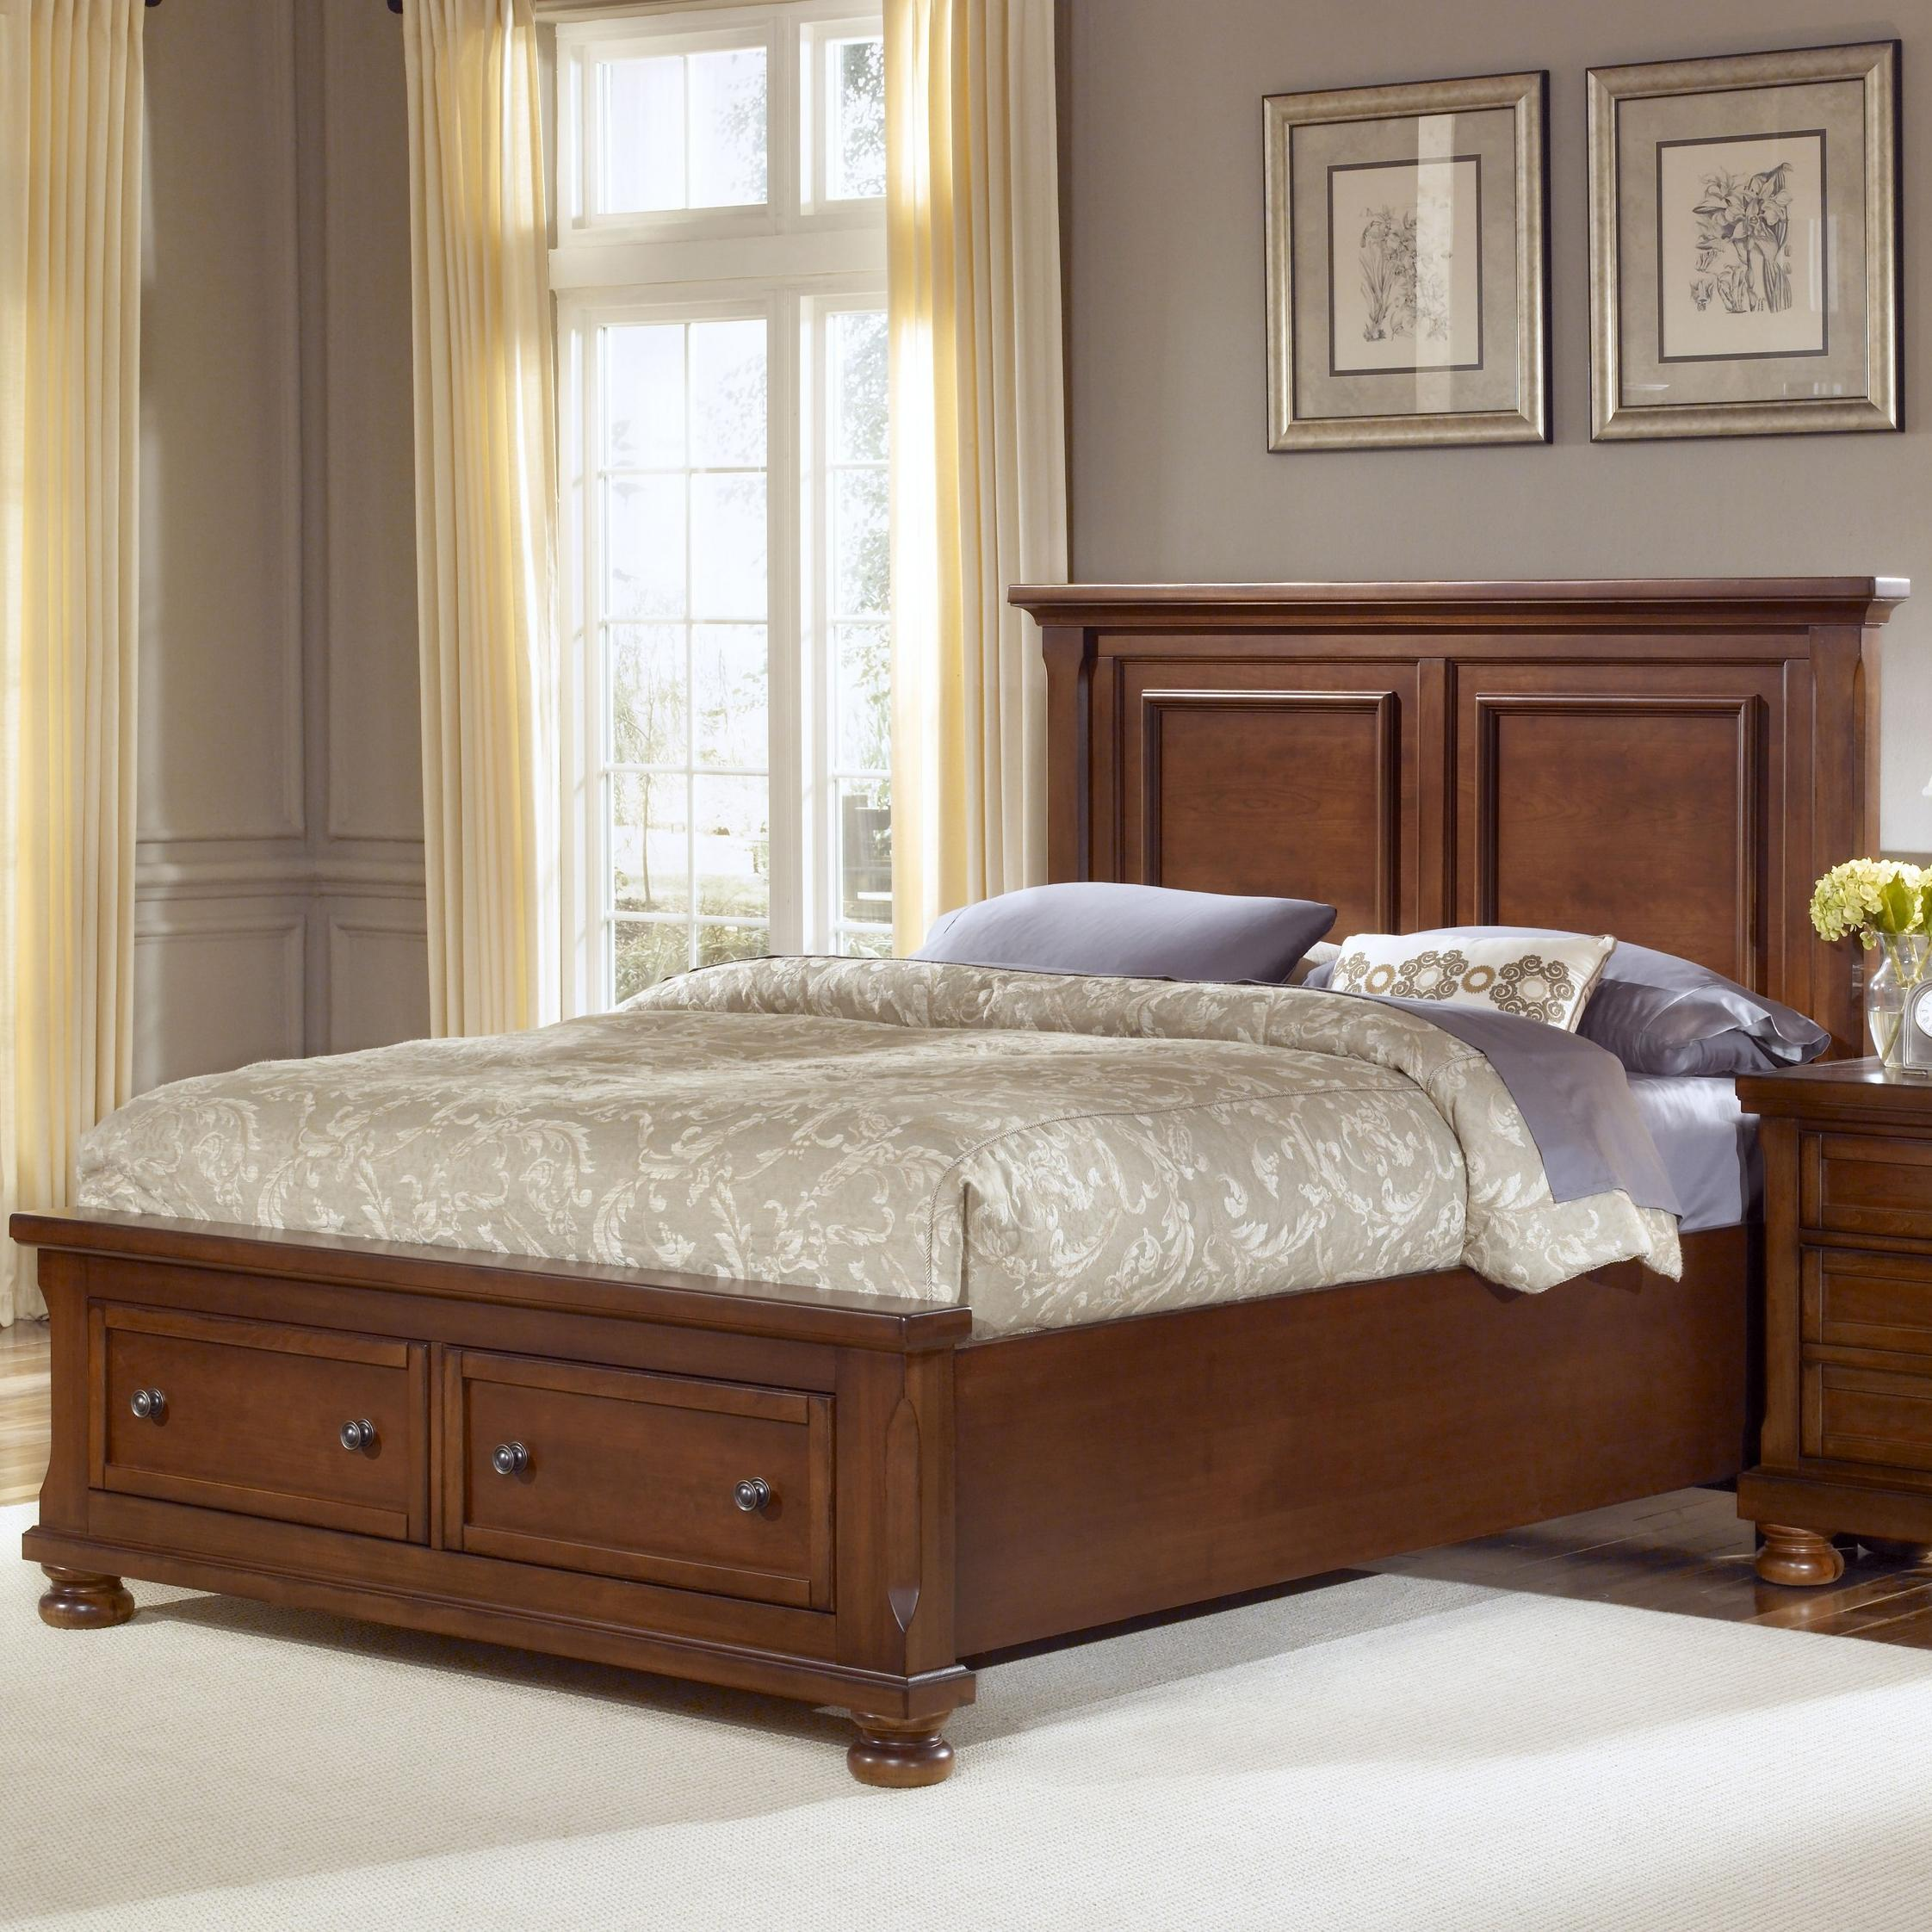 Vaughan Bassett Reflections King Storage Bed with Mansion Headboard - Item Number: 532-668+066B+501+666T